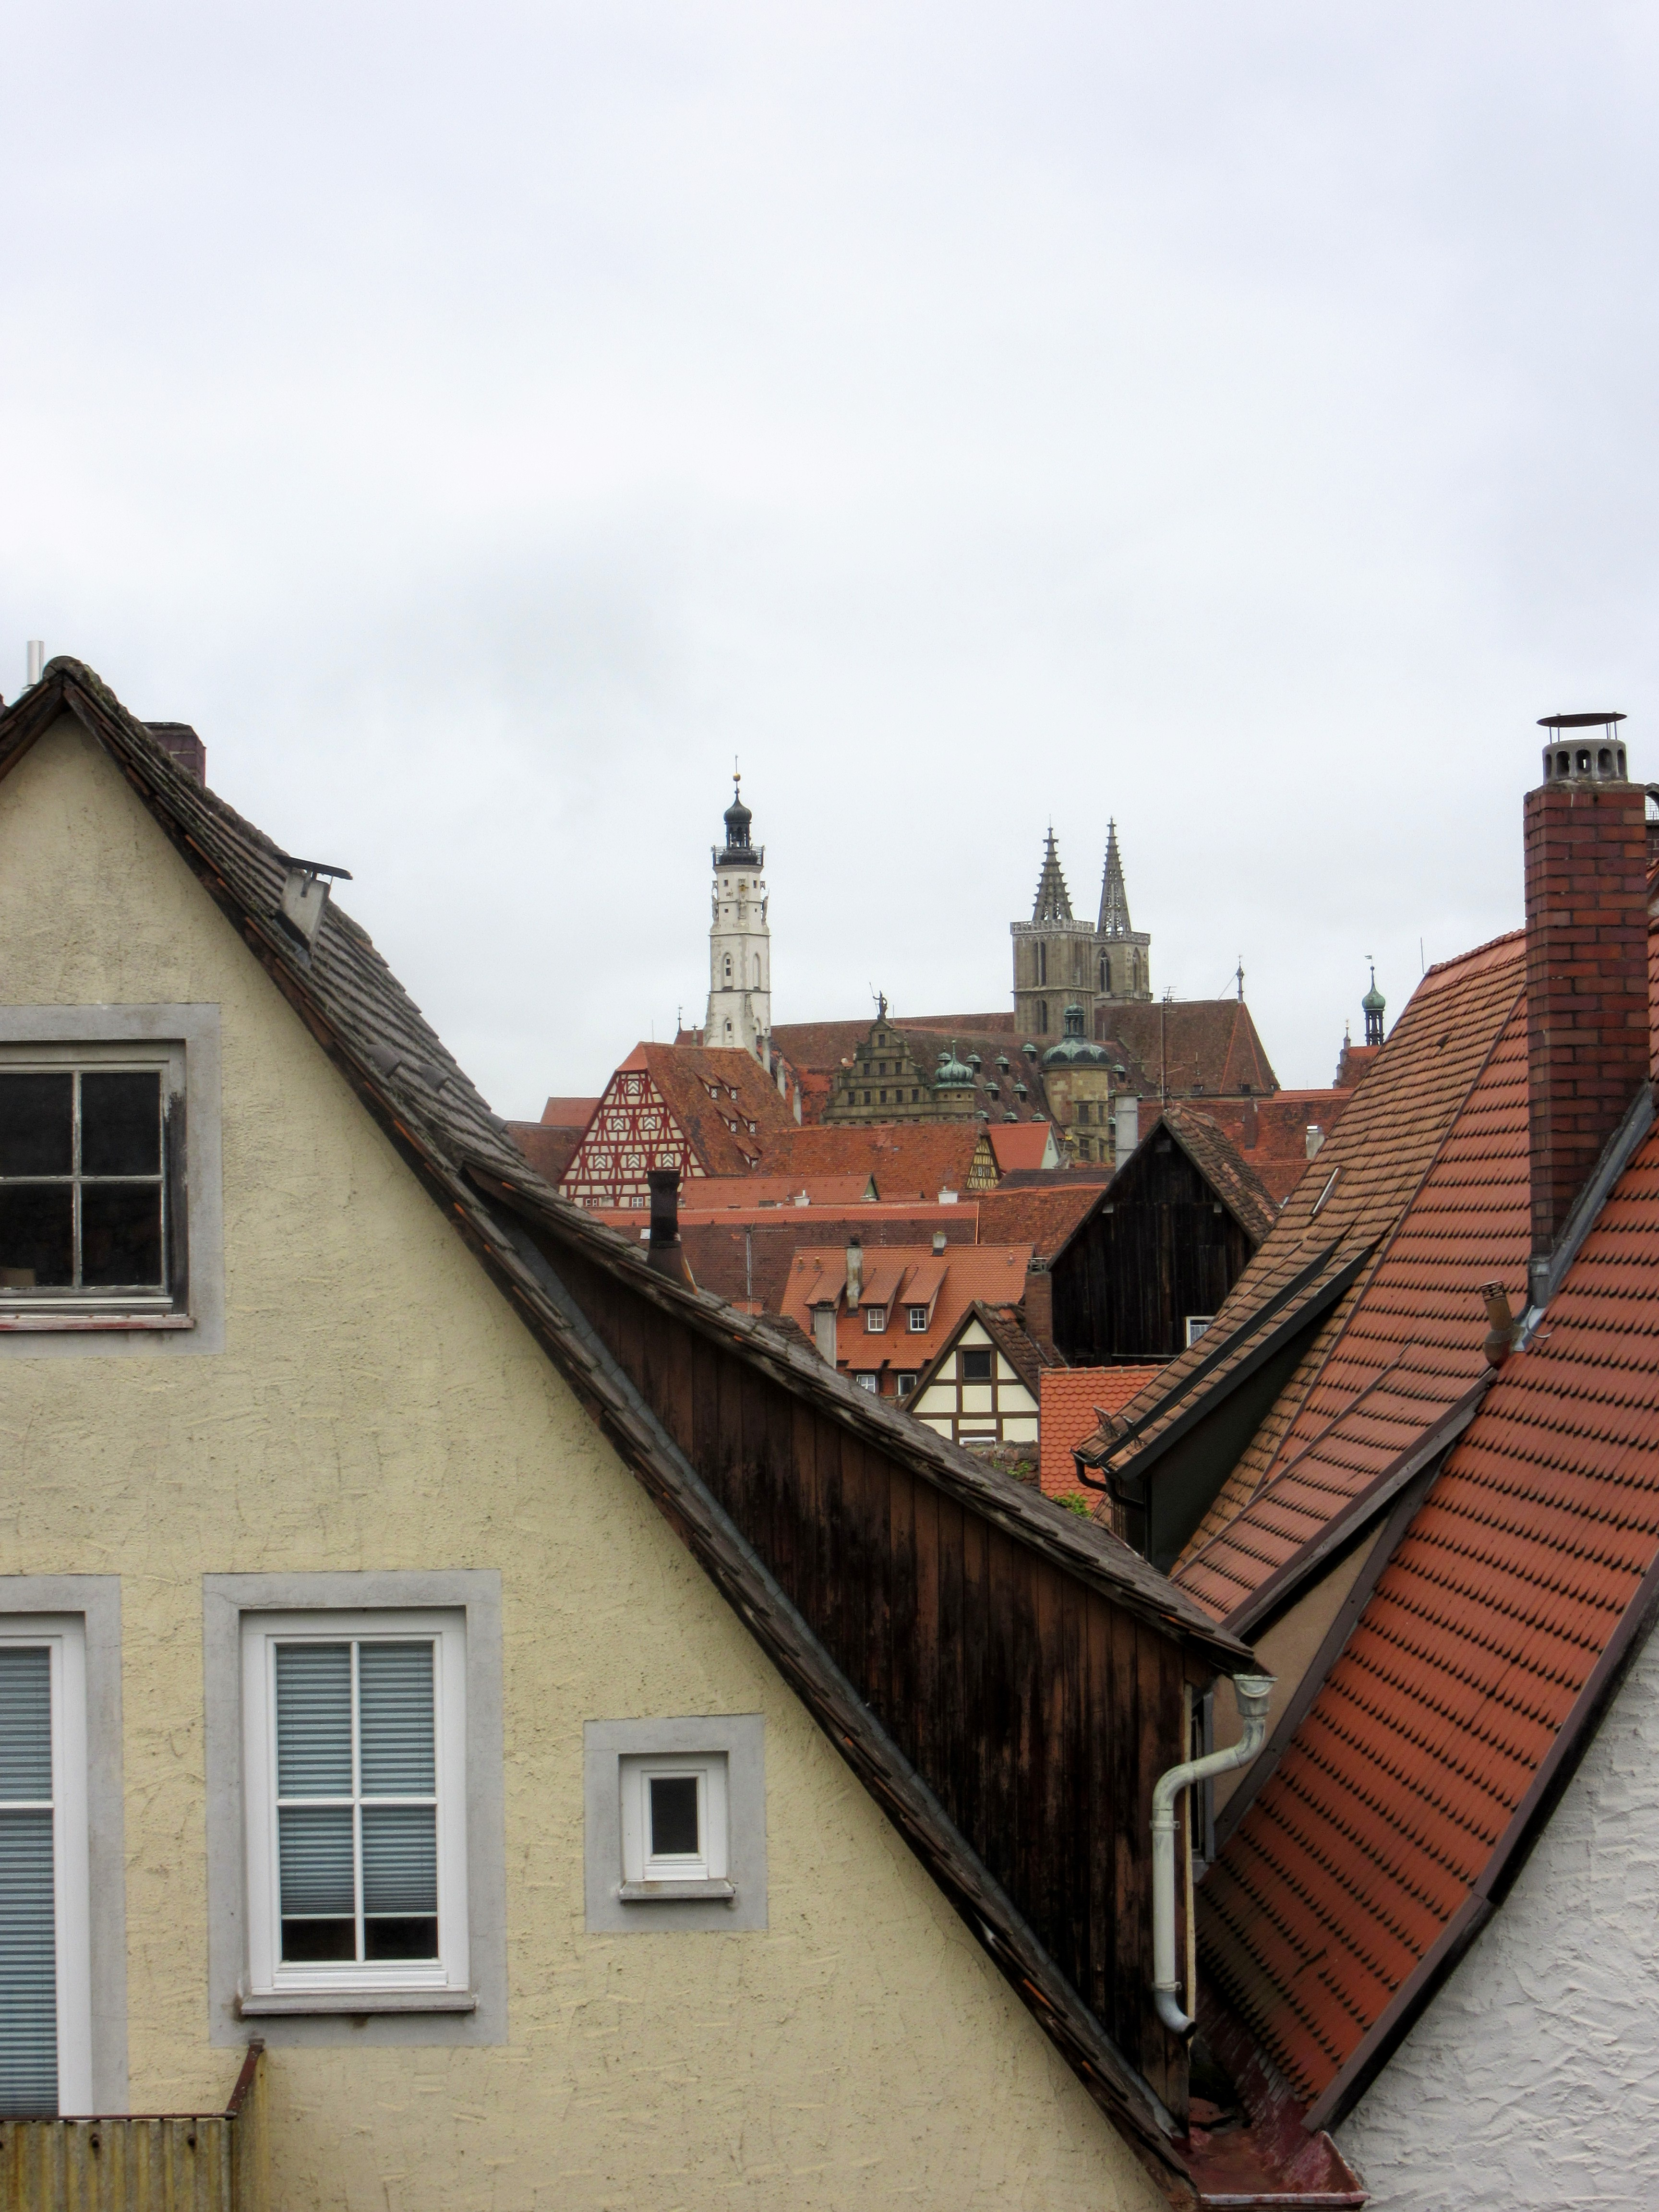 City center seen between the roof tops. | Walking Along the Wall of Rothenburg ob der Tauber.